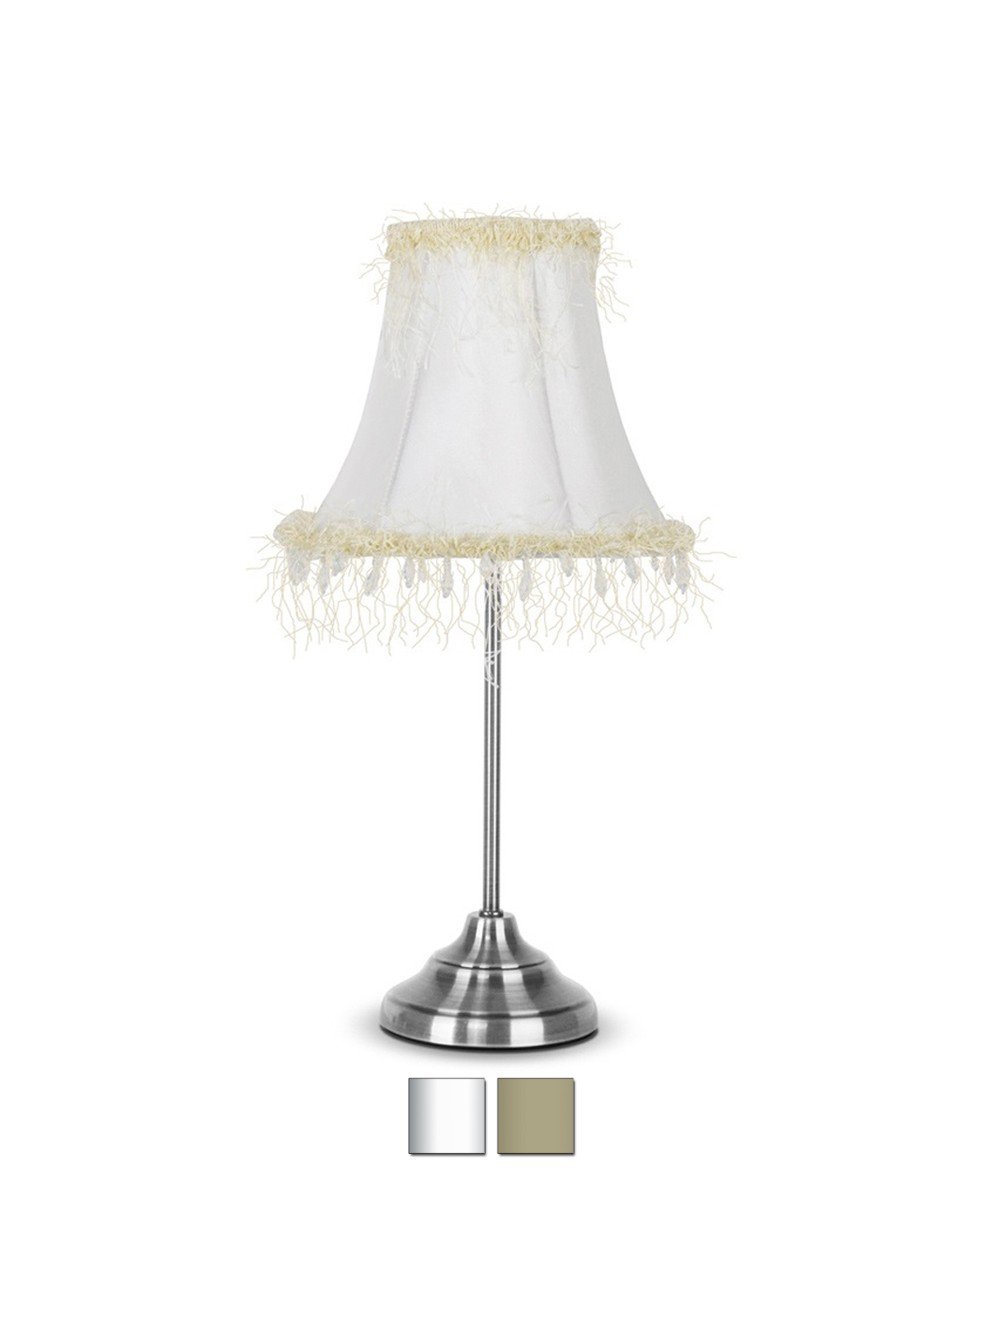 If The Lamp Shade Has Beautiful Colors And Patterns, The Lamp Will  Automatically Stand Out When Lit.There Are Very Many Shabby Chic Table Lamp  Designs That ...